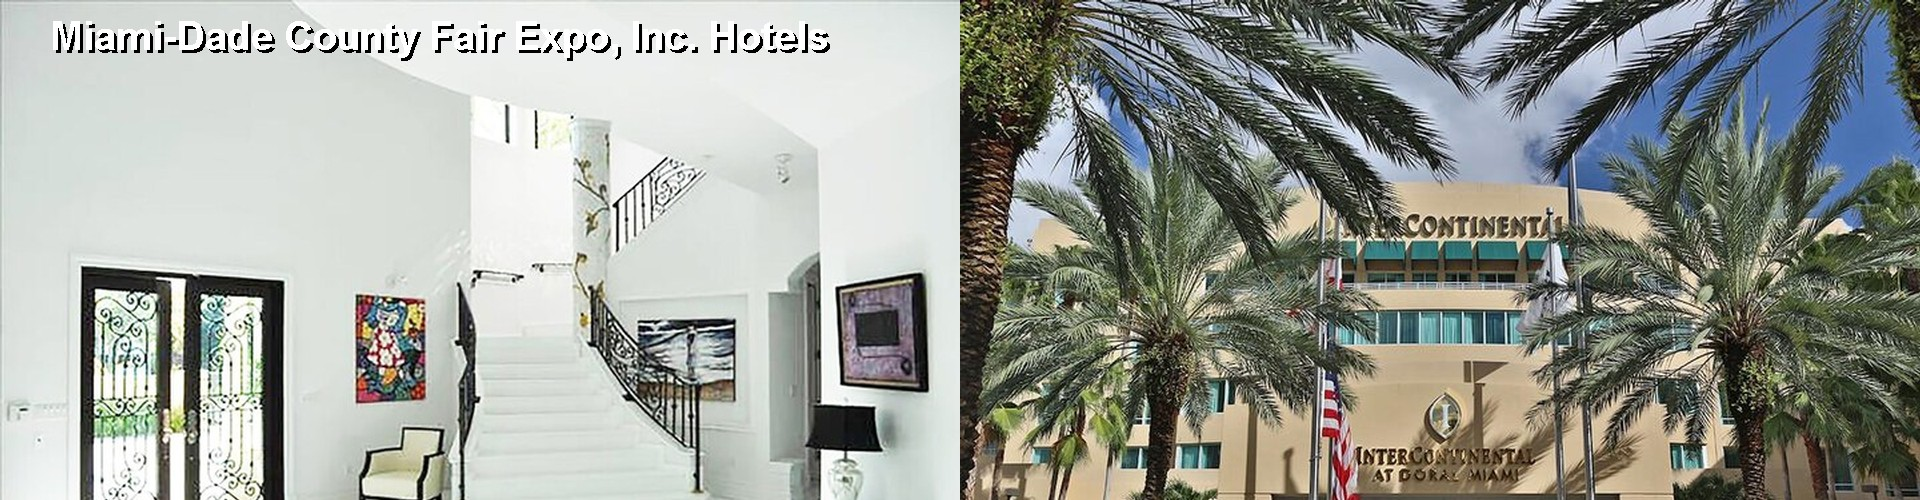 5 Best Hotels near Miami-Dade County Fair Expo, Inc.